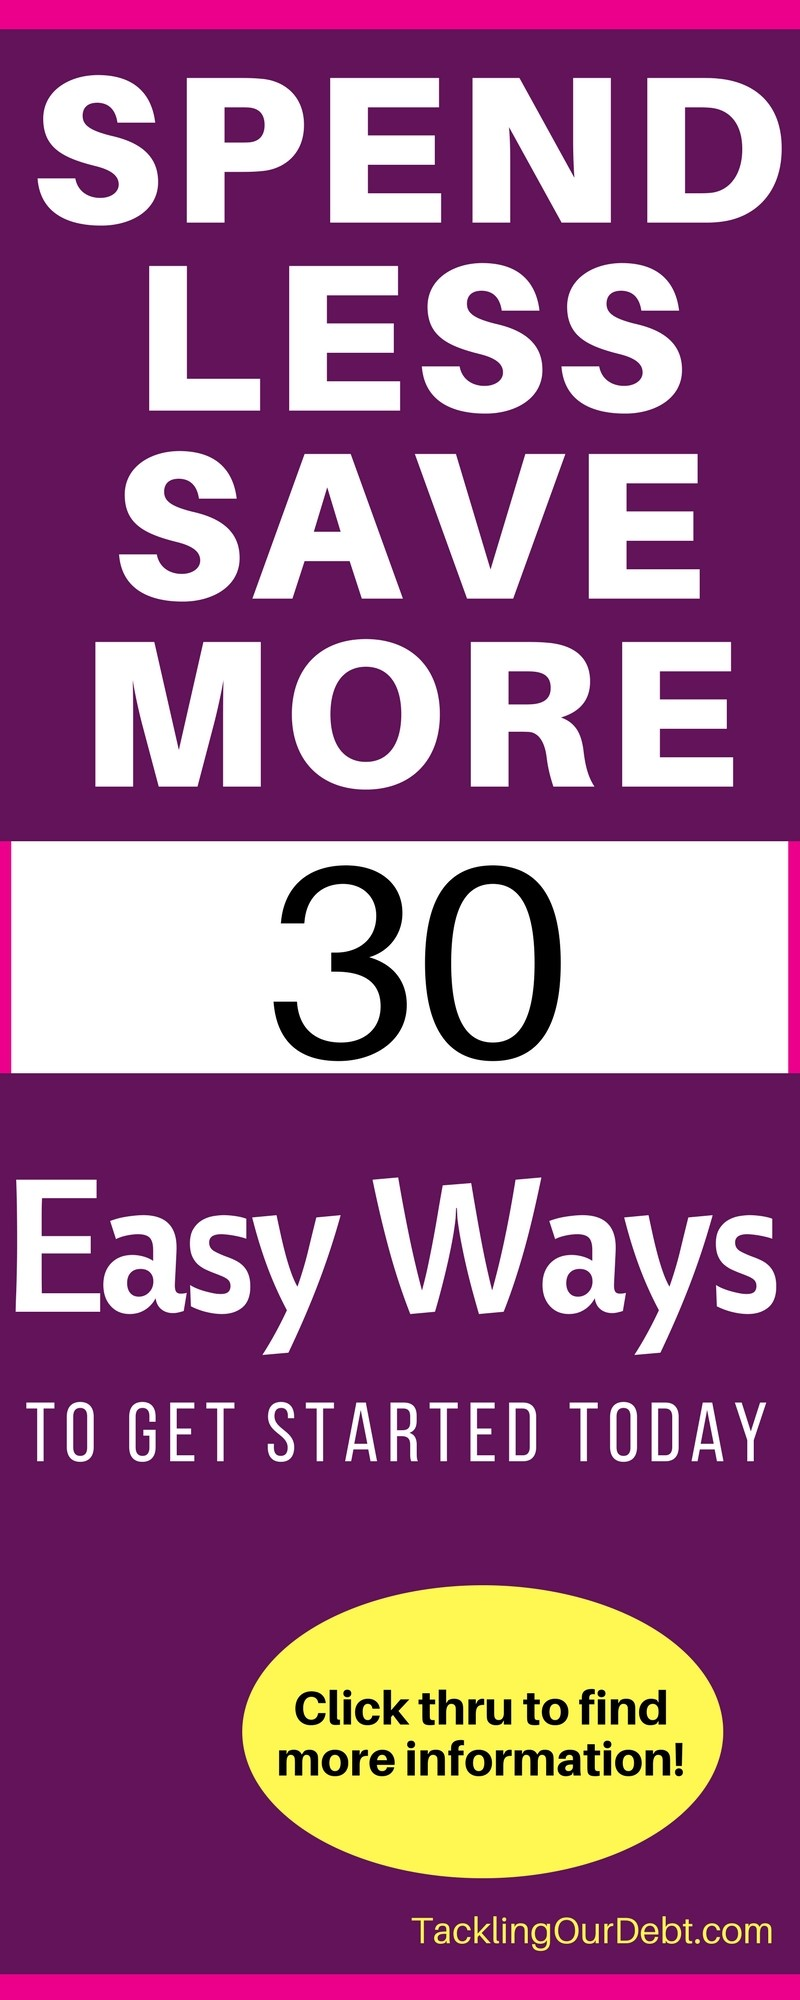 Learn how to spend less money so that you can save more money. Here are 30 easy ways to get started. Click thru to learn more!